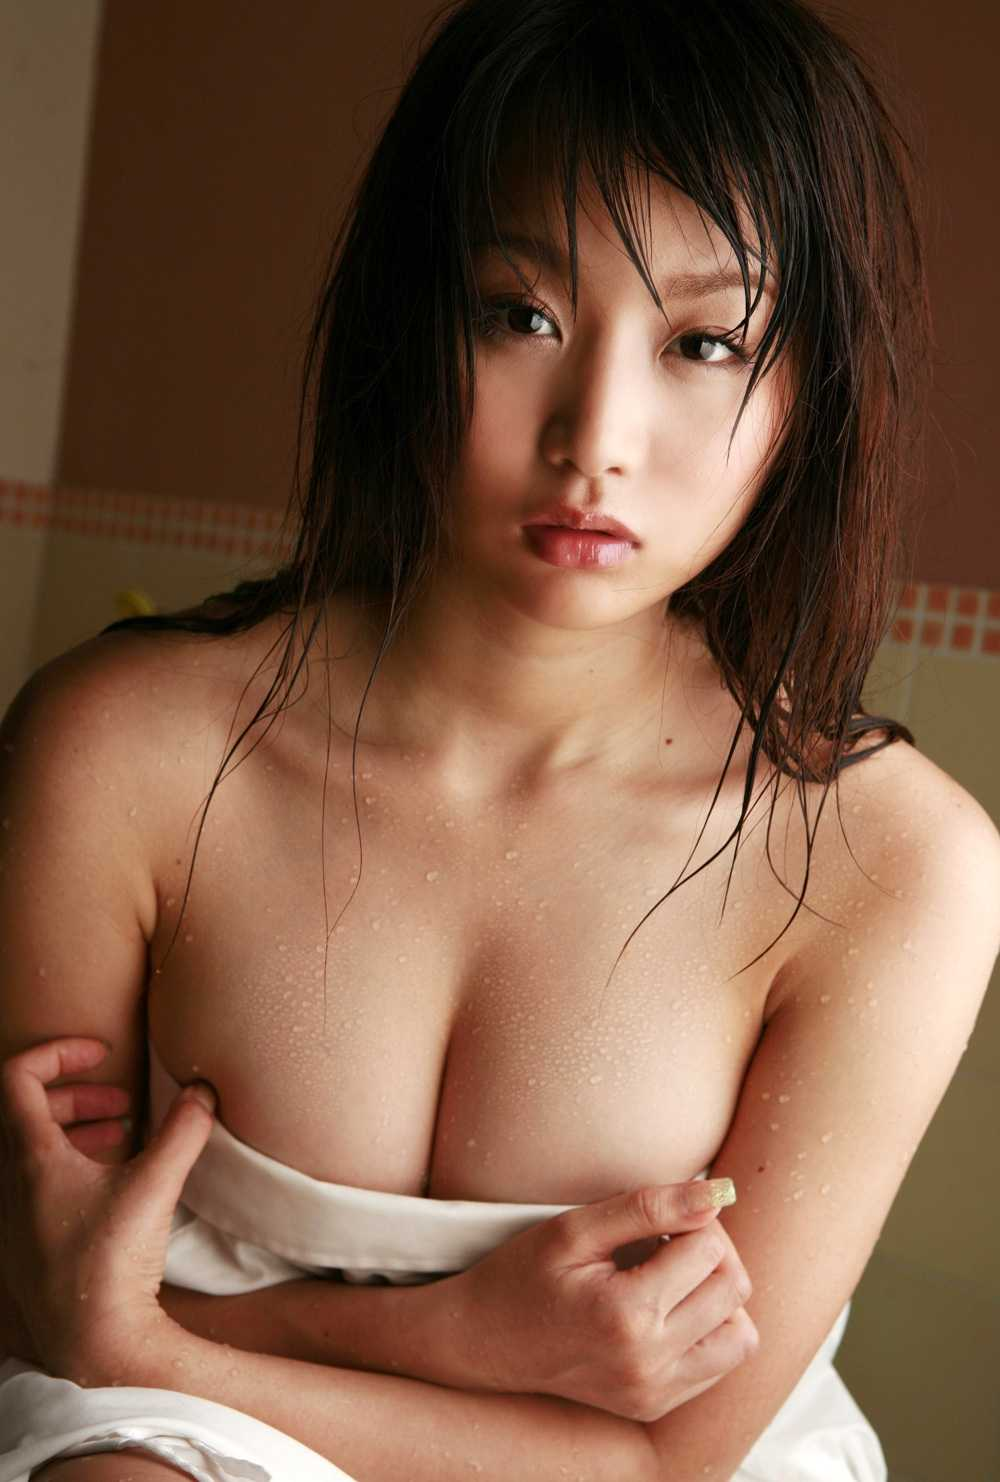 Girls me japanese and asian nude my